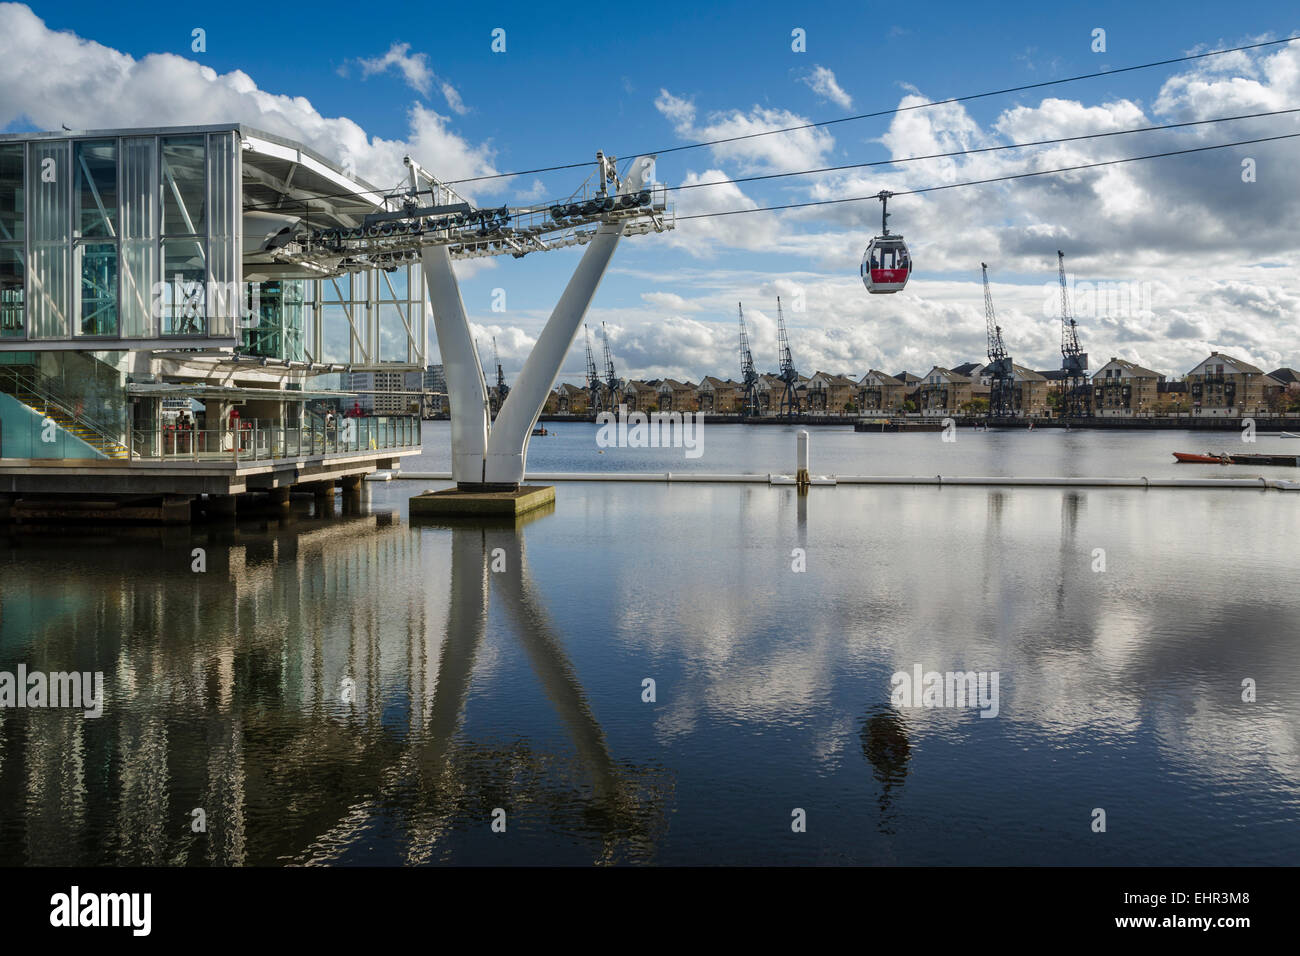 The Emirates Airline or Thames Cable Car connects the O2 Arena with the Royal Docks of London. Stock Photo